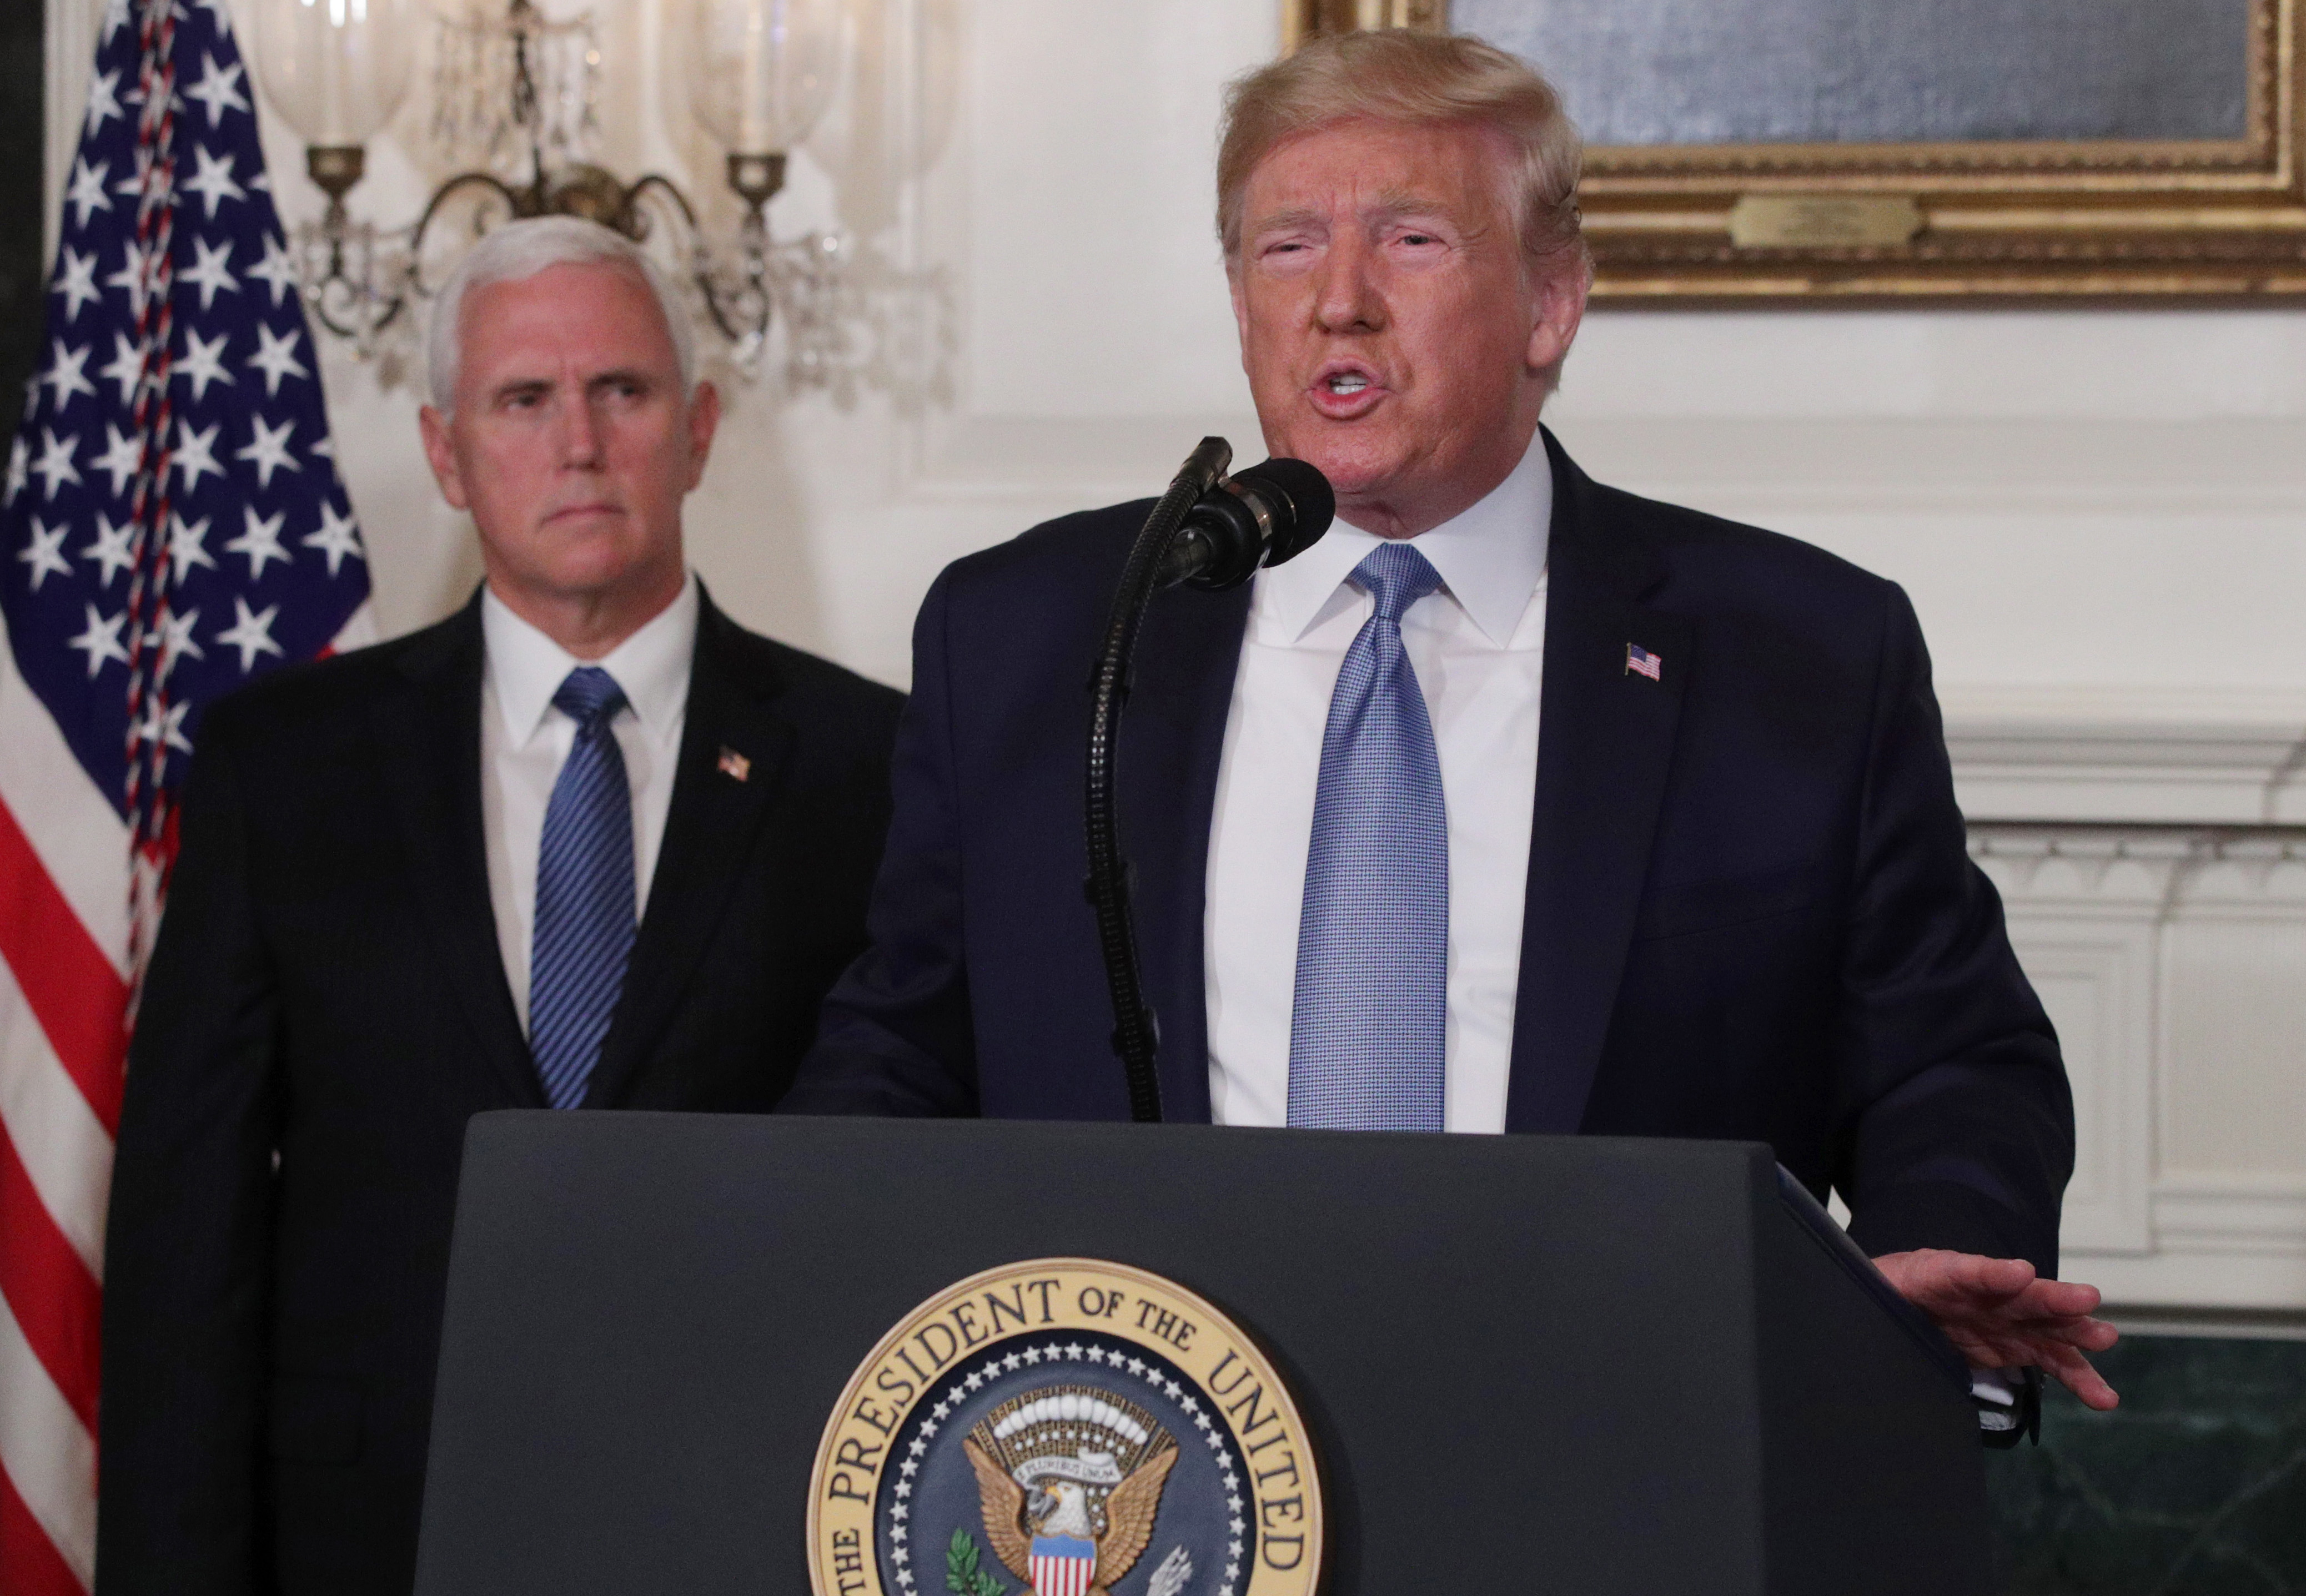 Trump Says He Will Cooperate With Impeachment Inquiry 'If the Rules Are Fair'